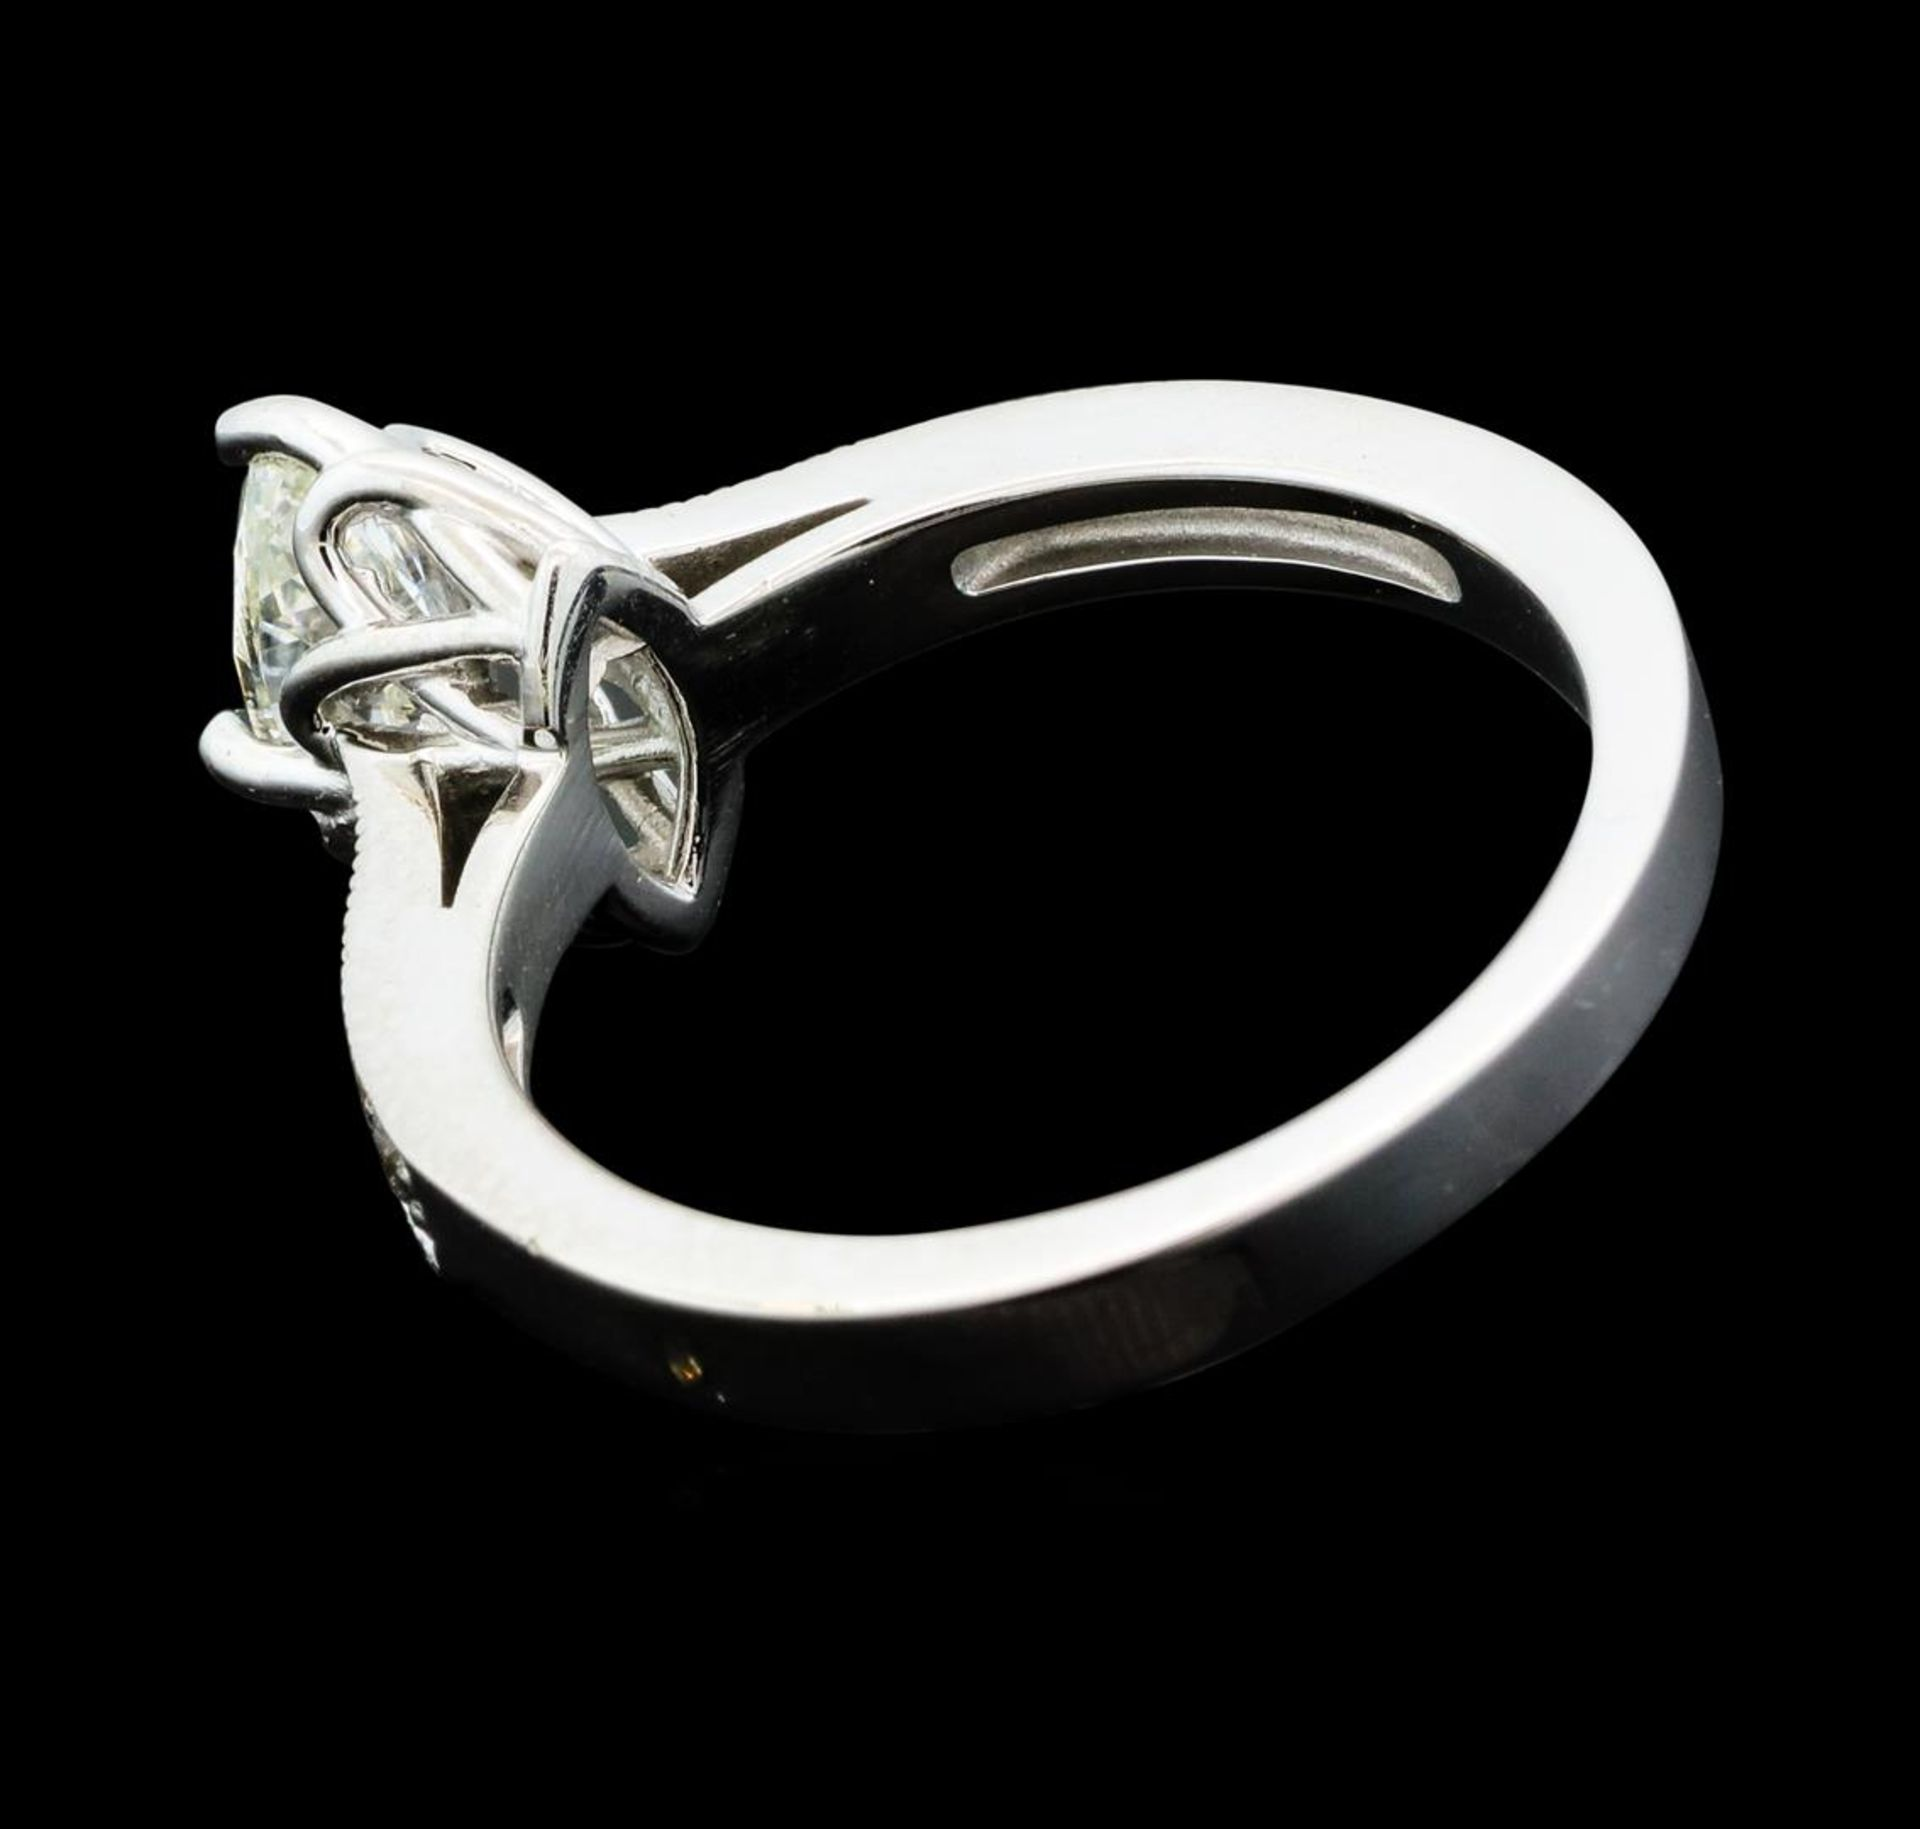 1.21 ctw Diamond Ring - 14KT White Gold - Image 3 of 5